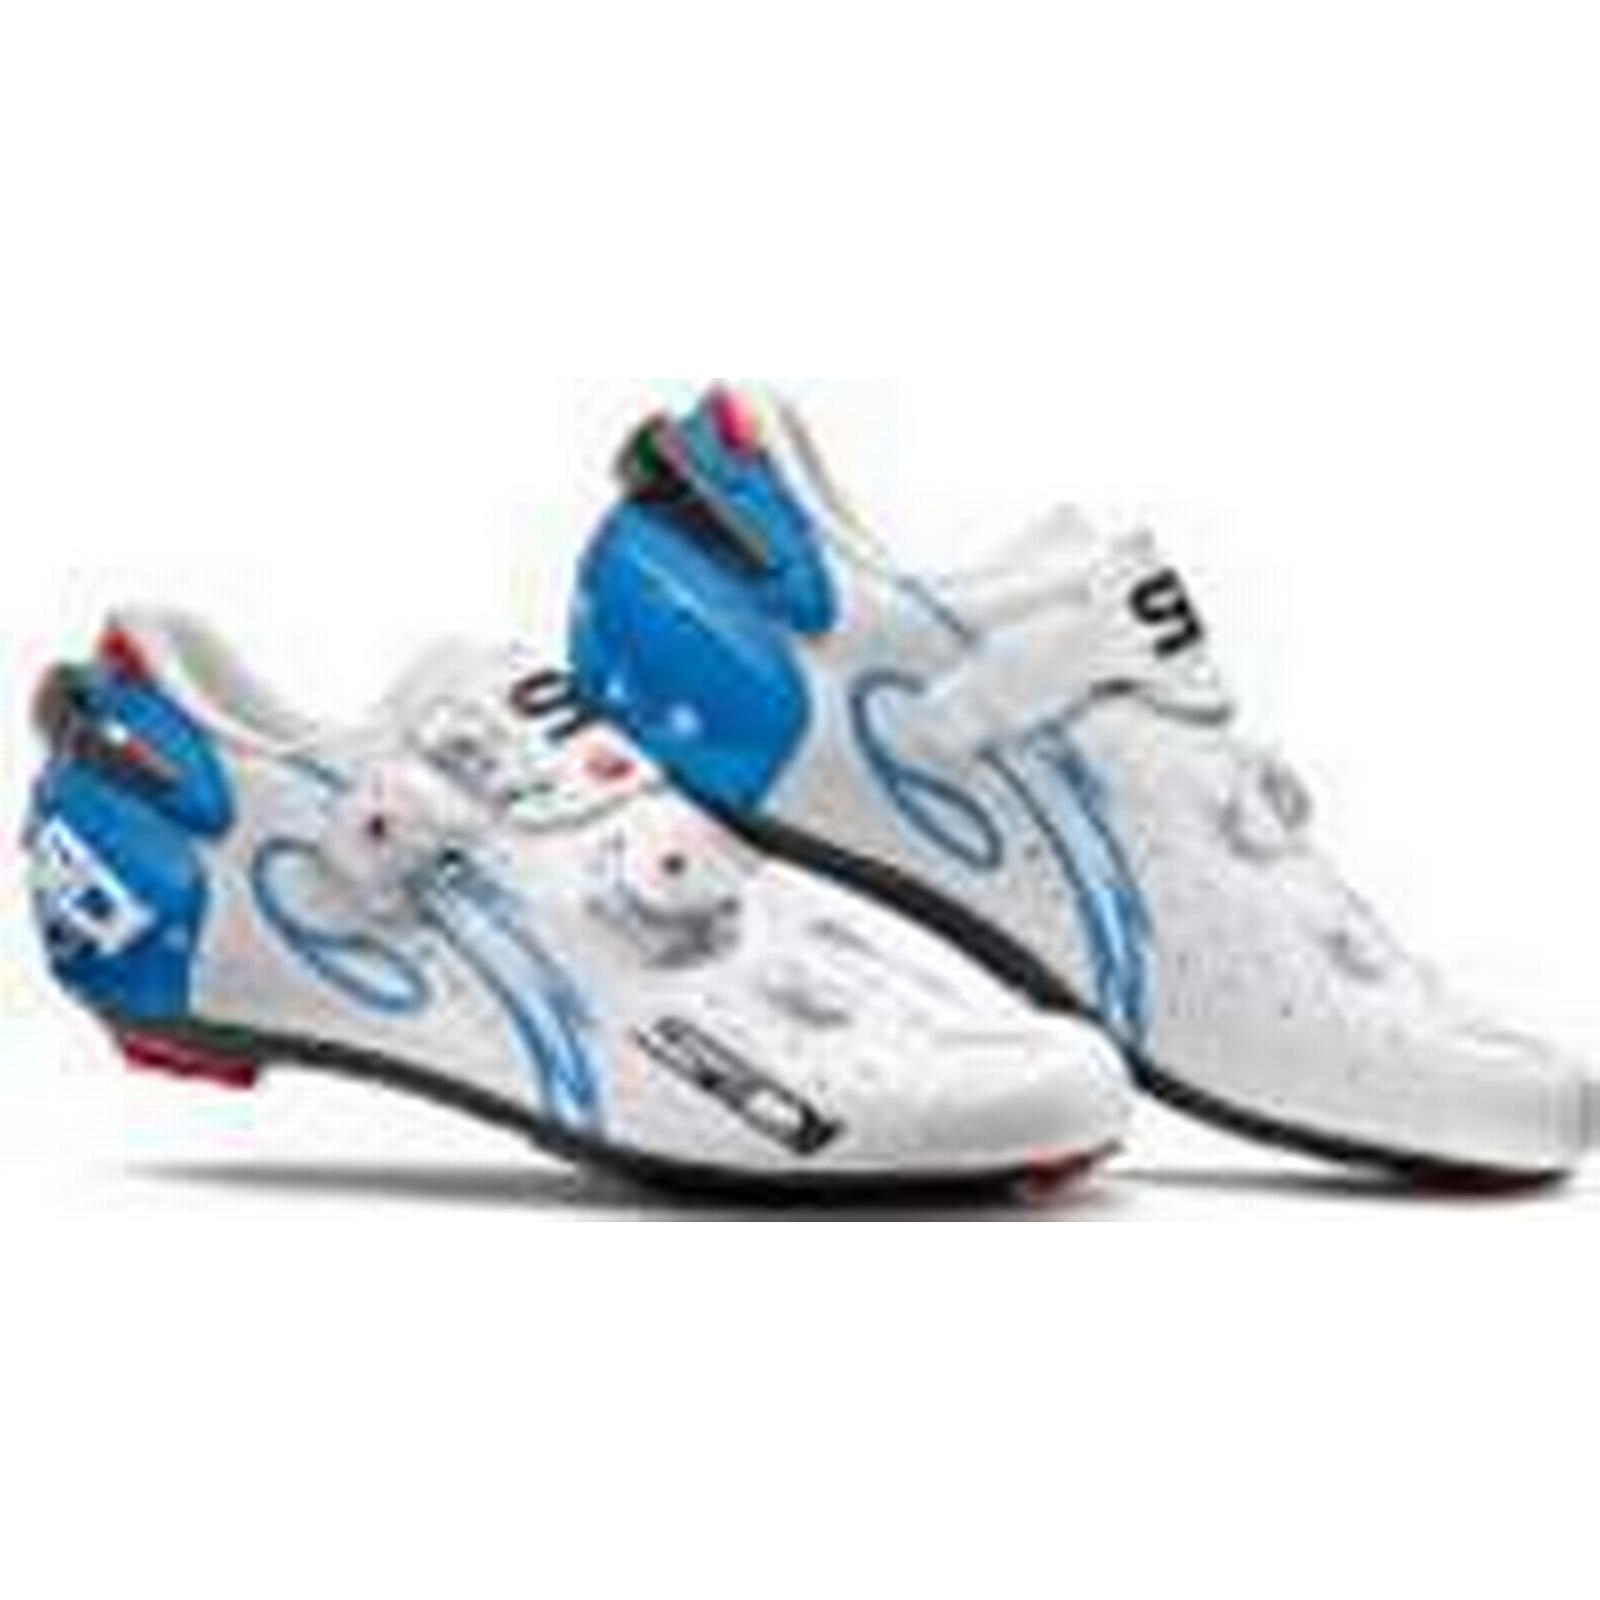 Sidi Wire Carbon Air Vernice Women's Cycling Shoes - 40 White/Light Blue - EU 40 - e14fe3